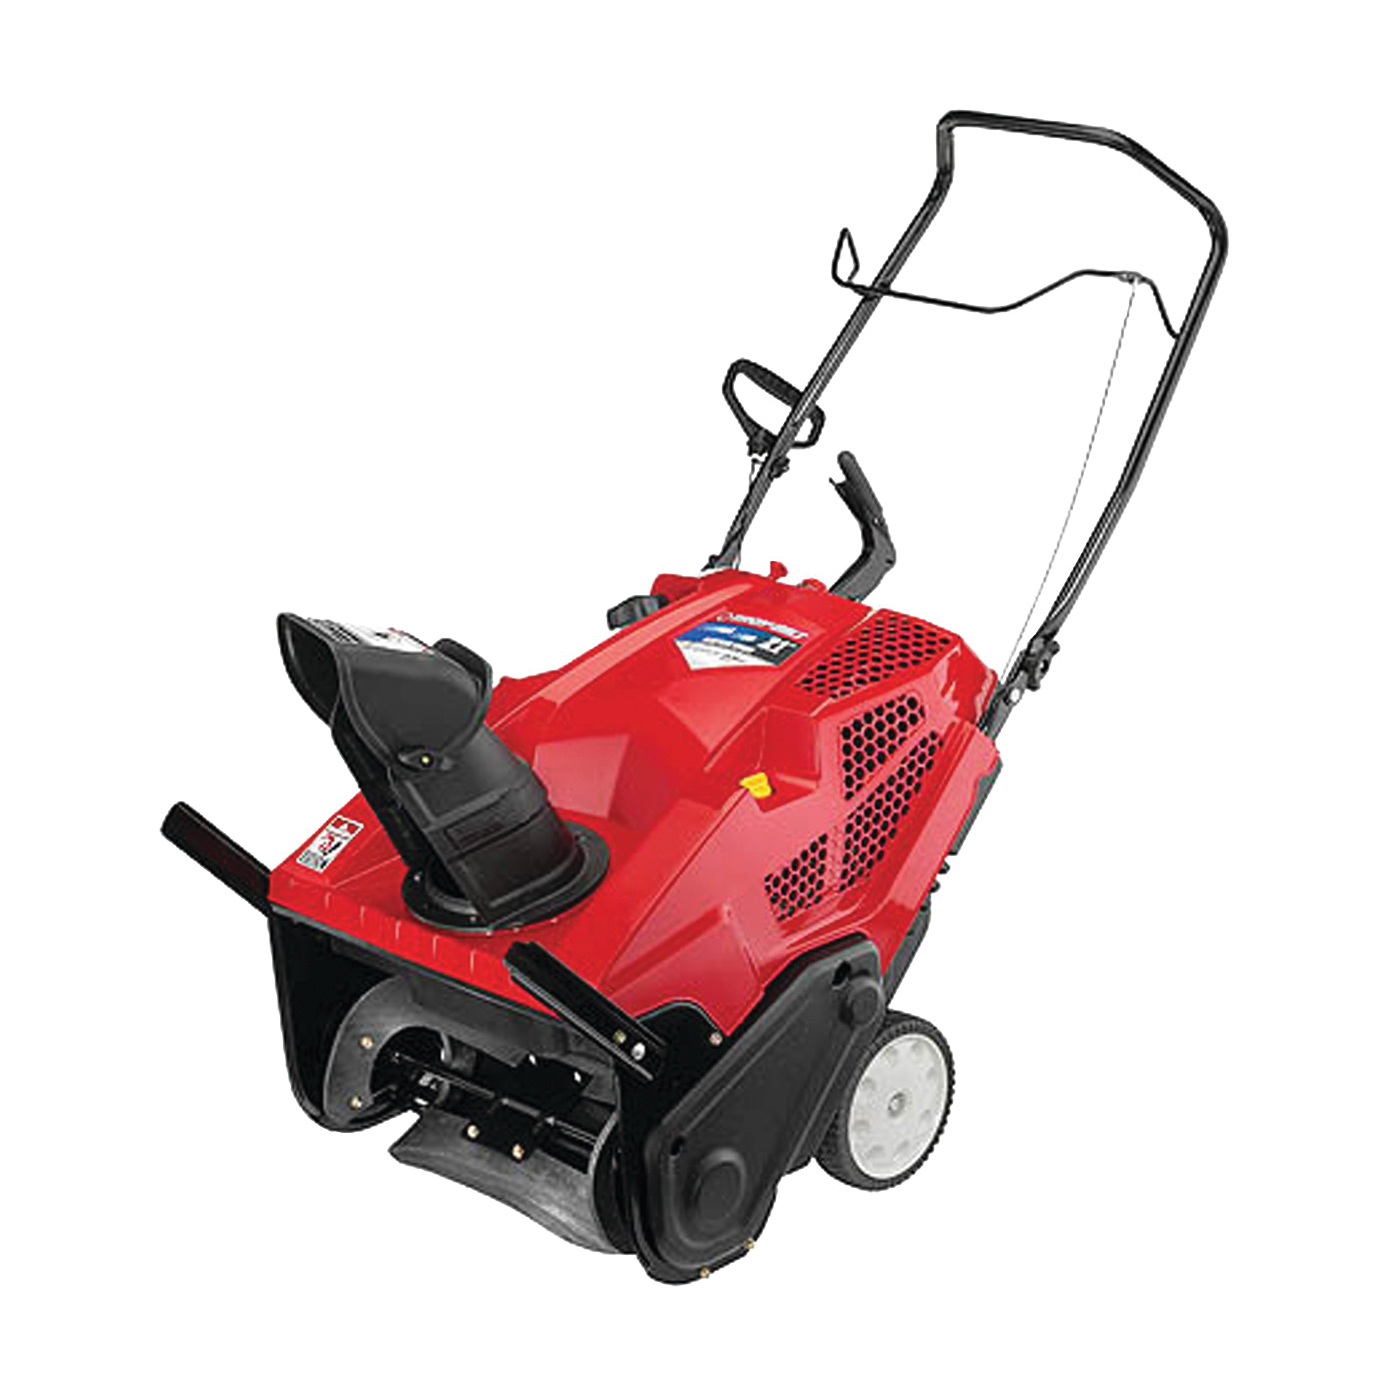 Picture of MTD 31AS2T7G766 Snow Thrower, 1 -Stage, 21 in W Cleaning